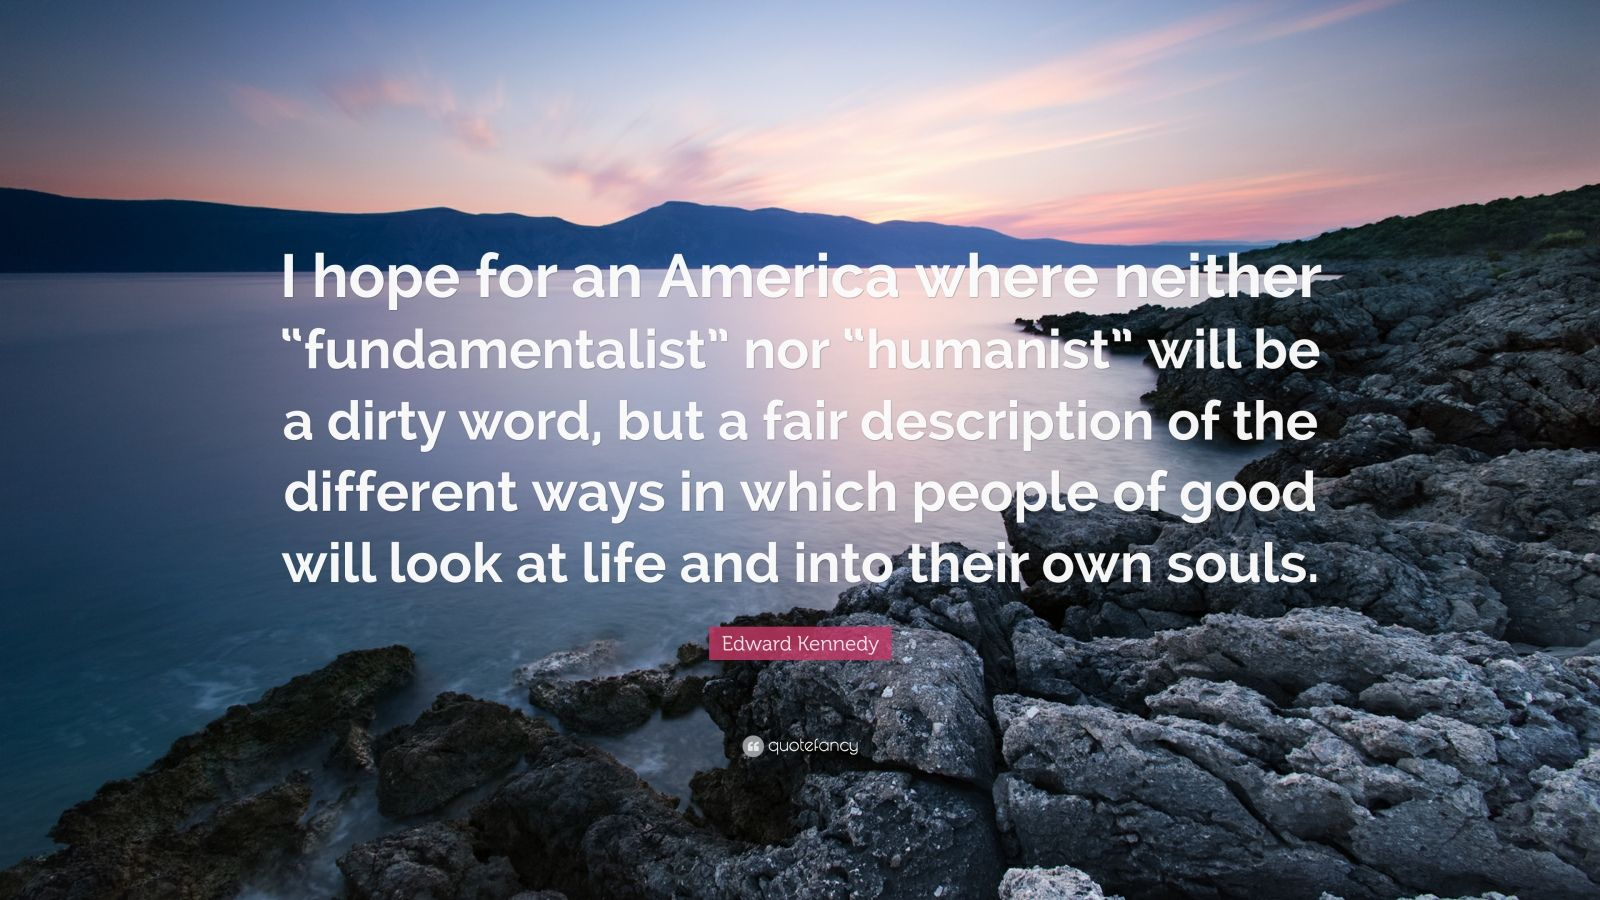 """Edward Kennedy Quote: """"I hope for an America where neither """"fundamentalist"""" nor """"humanist"""" will be a dirty word, but a fair description of the different ways in which people of good will look at life and into their own souls."""""""